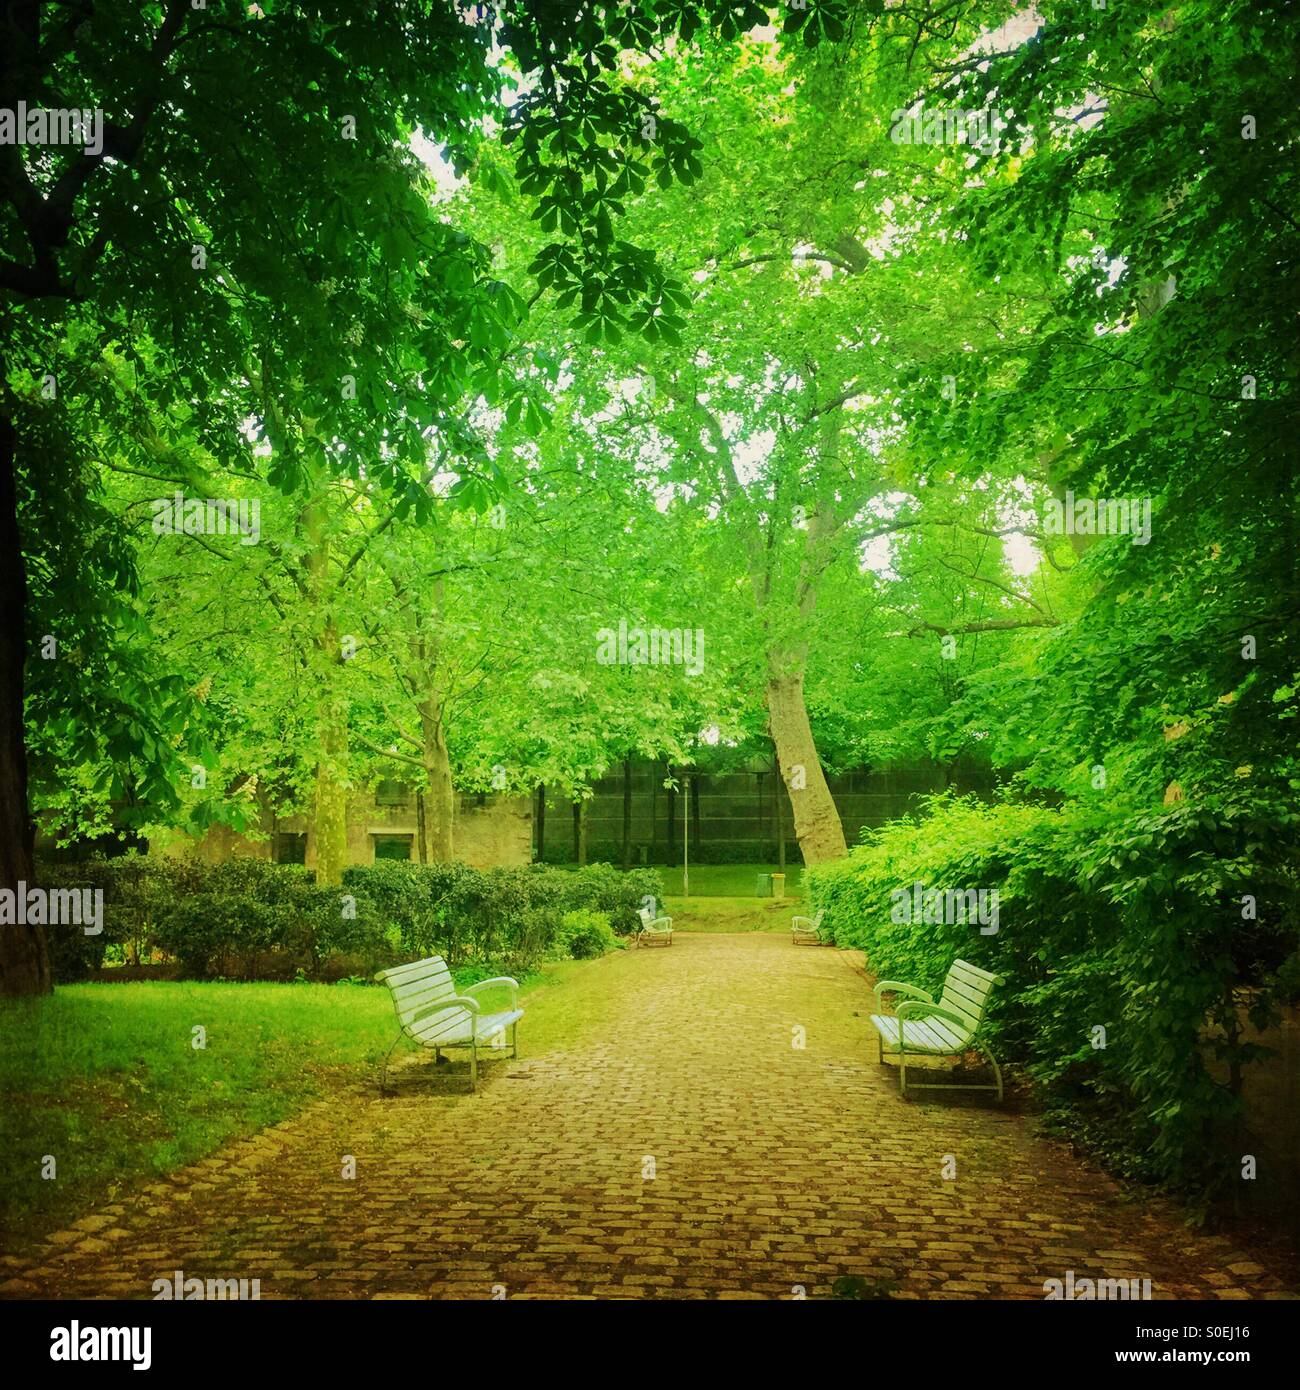 Verdant green Parc de Bercy with stone pavement, benches, trees and fresh Spring foliage in Paris, France. Vintage Stock Photo